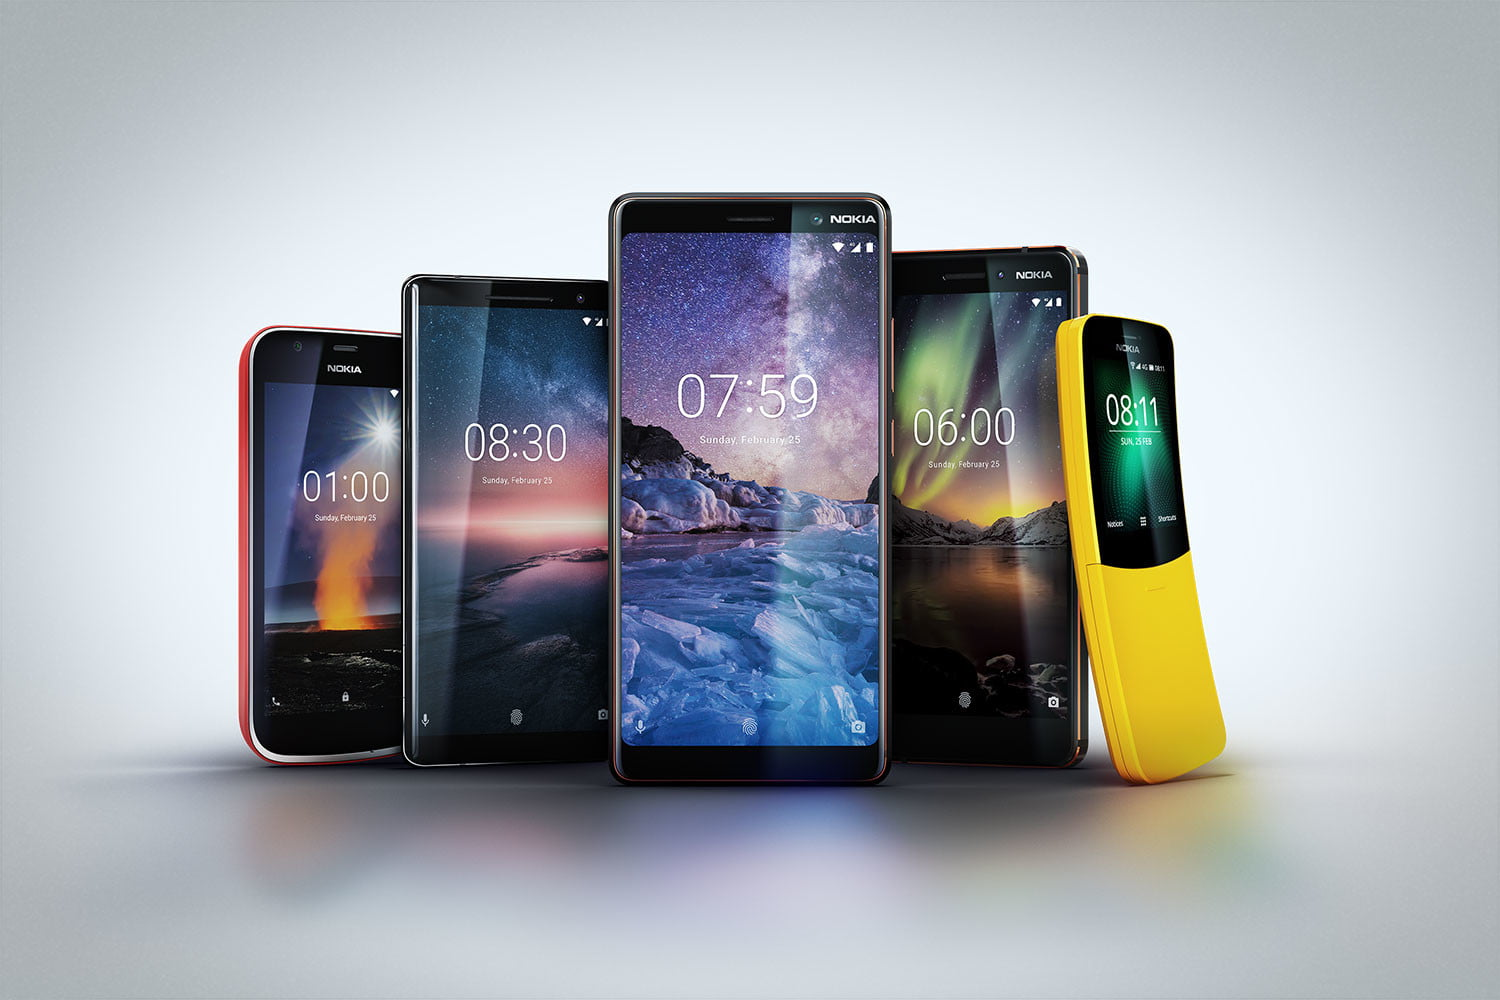 hmd just announced 5 new nokia phones at mobile world congress